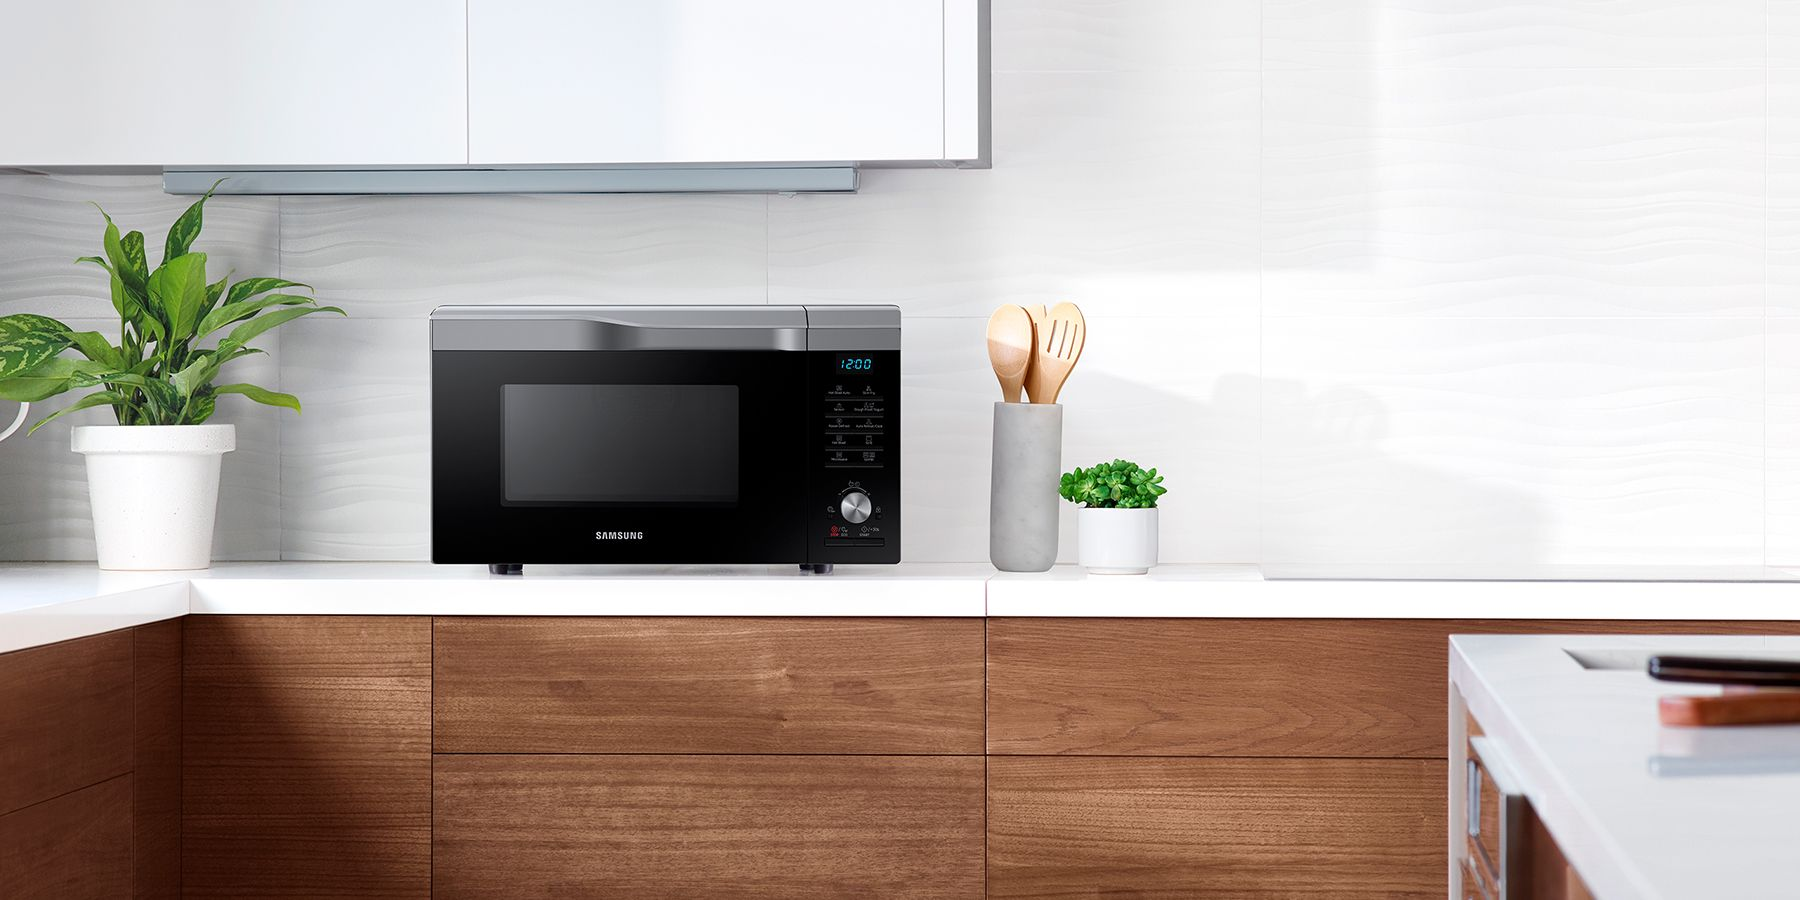 Microwave Oven In A Kitchen